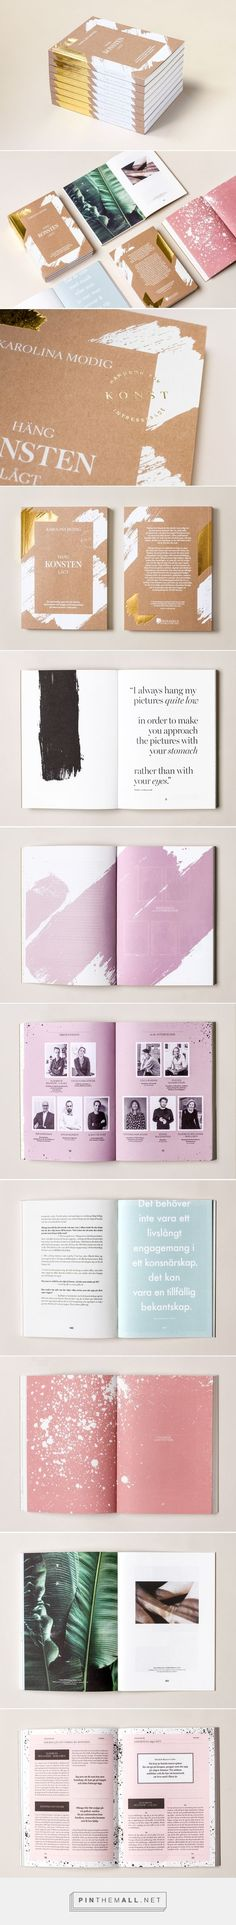 Häng konsten lågt Art Book Branding on Behance | Fivestar Branding – Design and Branding Agency & Inspiration Gallery